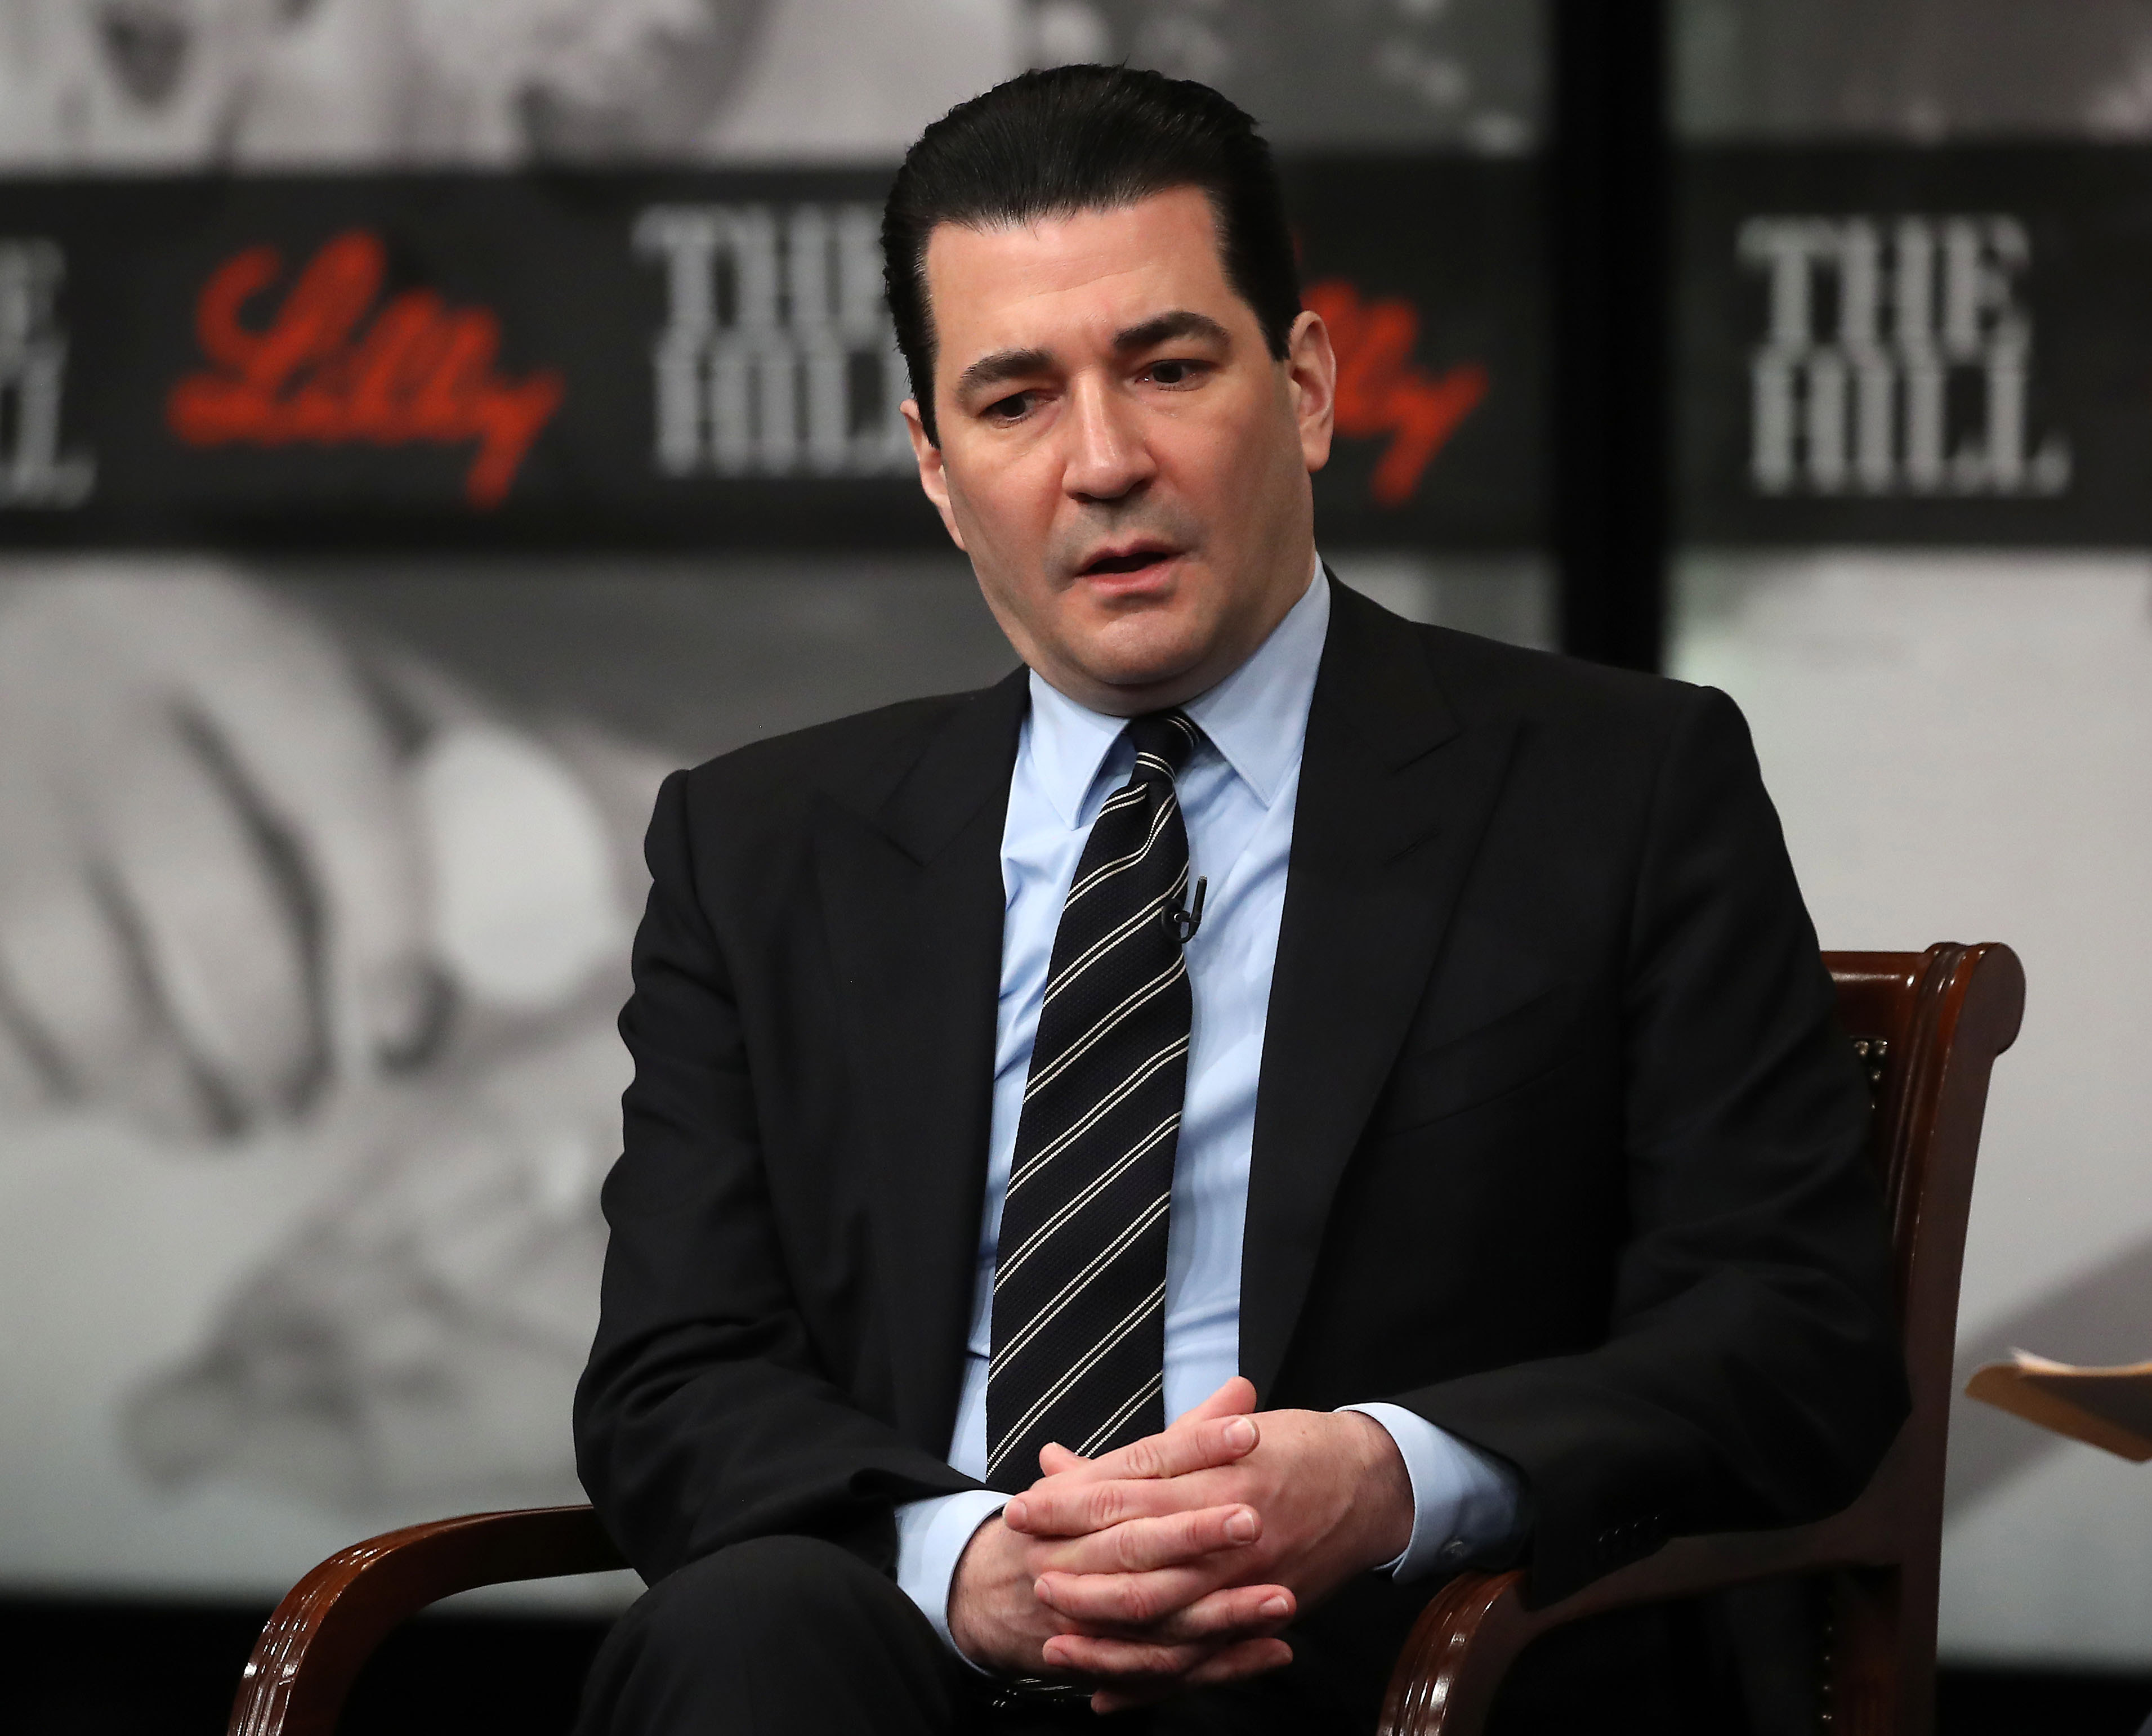 Dr. Scott Gottlieb, former commissioner of the US Food and Drug Administration, speaks at the Newseum on March 6, 2019 in Washington.